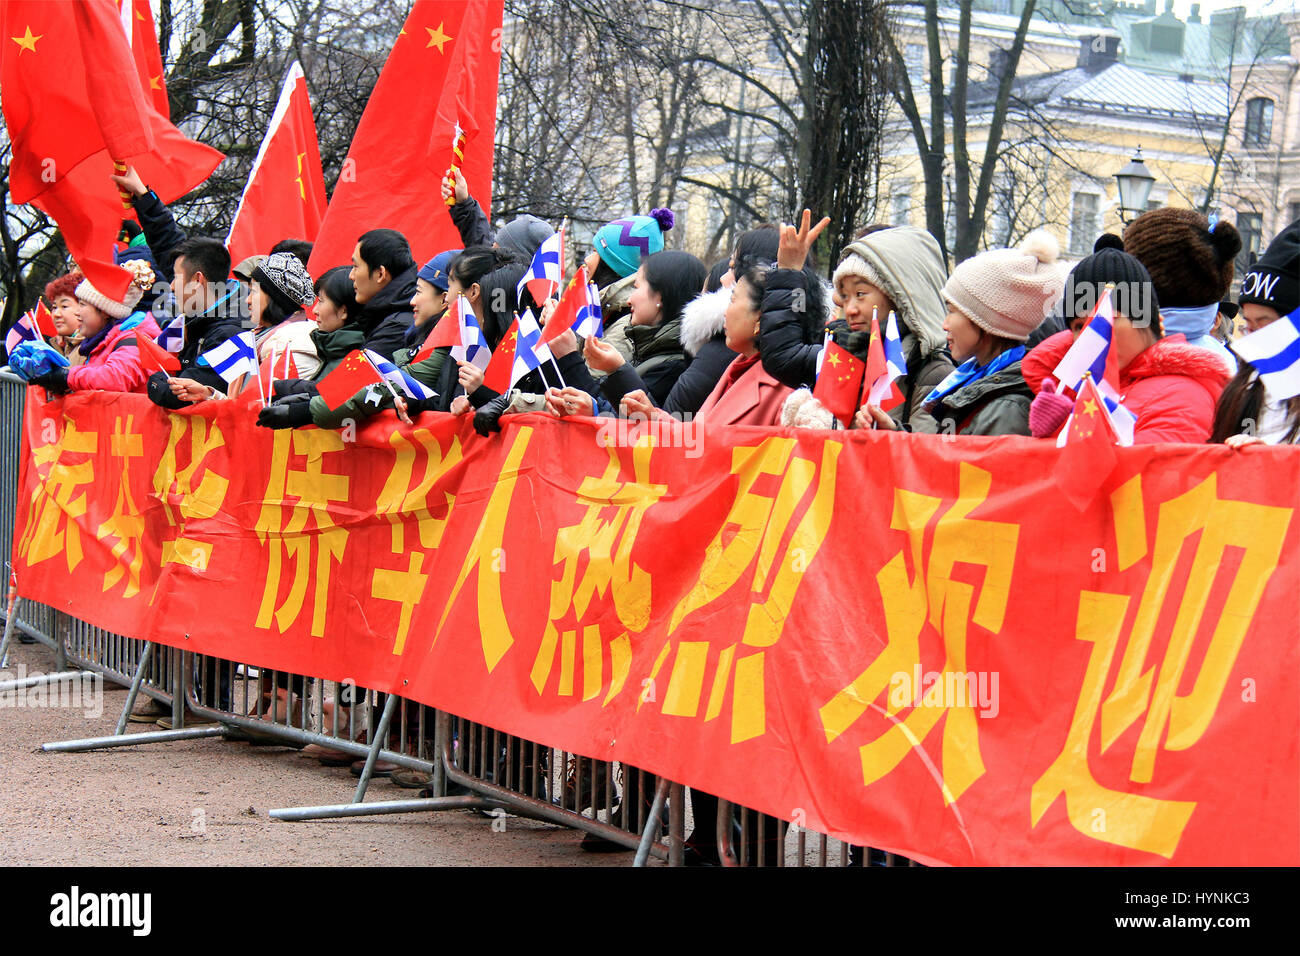 HELSINKI, FINLAND - APRIL 5, 2017: Chinese people wave Finnish and Chinese flags as they wait to see President Xi - Stock Image